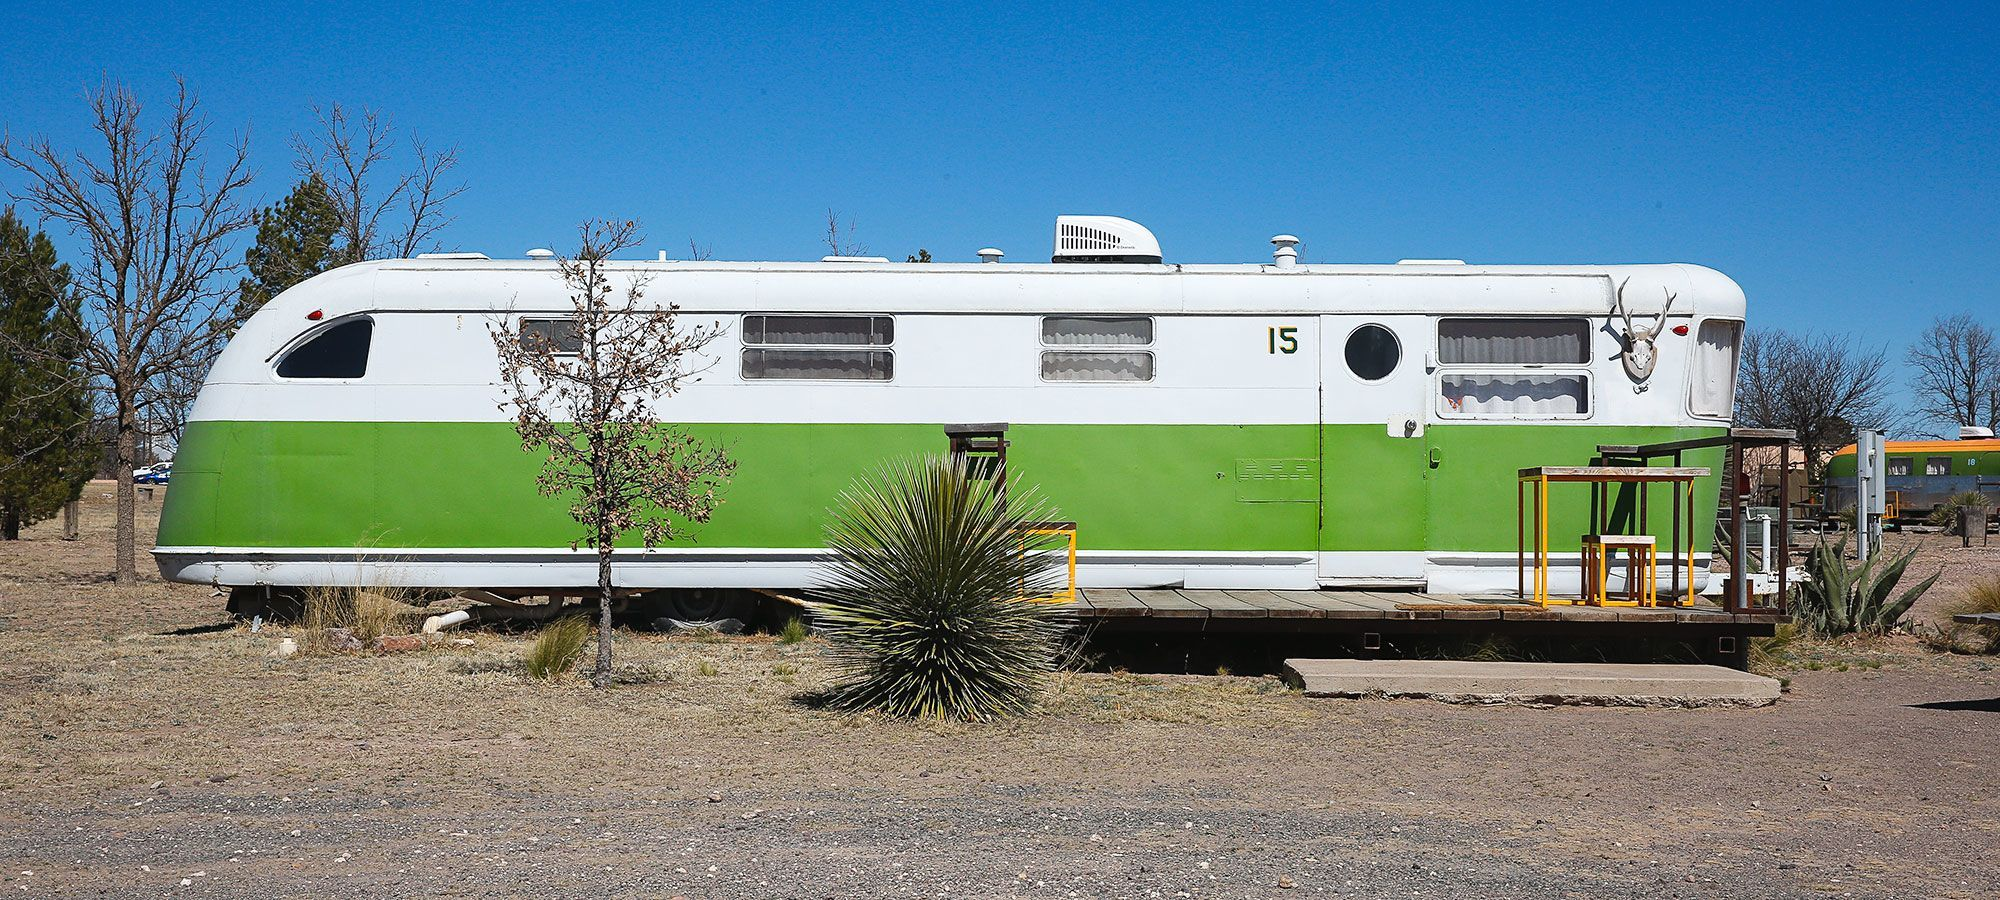 This Texas Hotel Doesn\'t Have Rooms—Only Trailers and Yurts—and it\'s ...